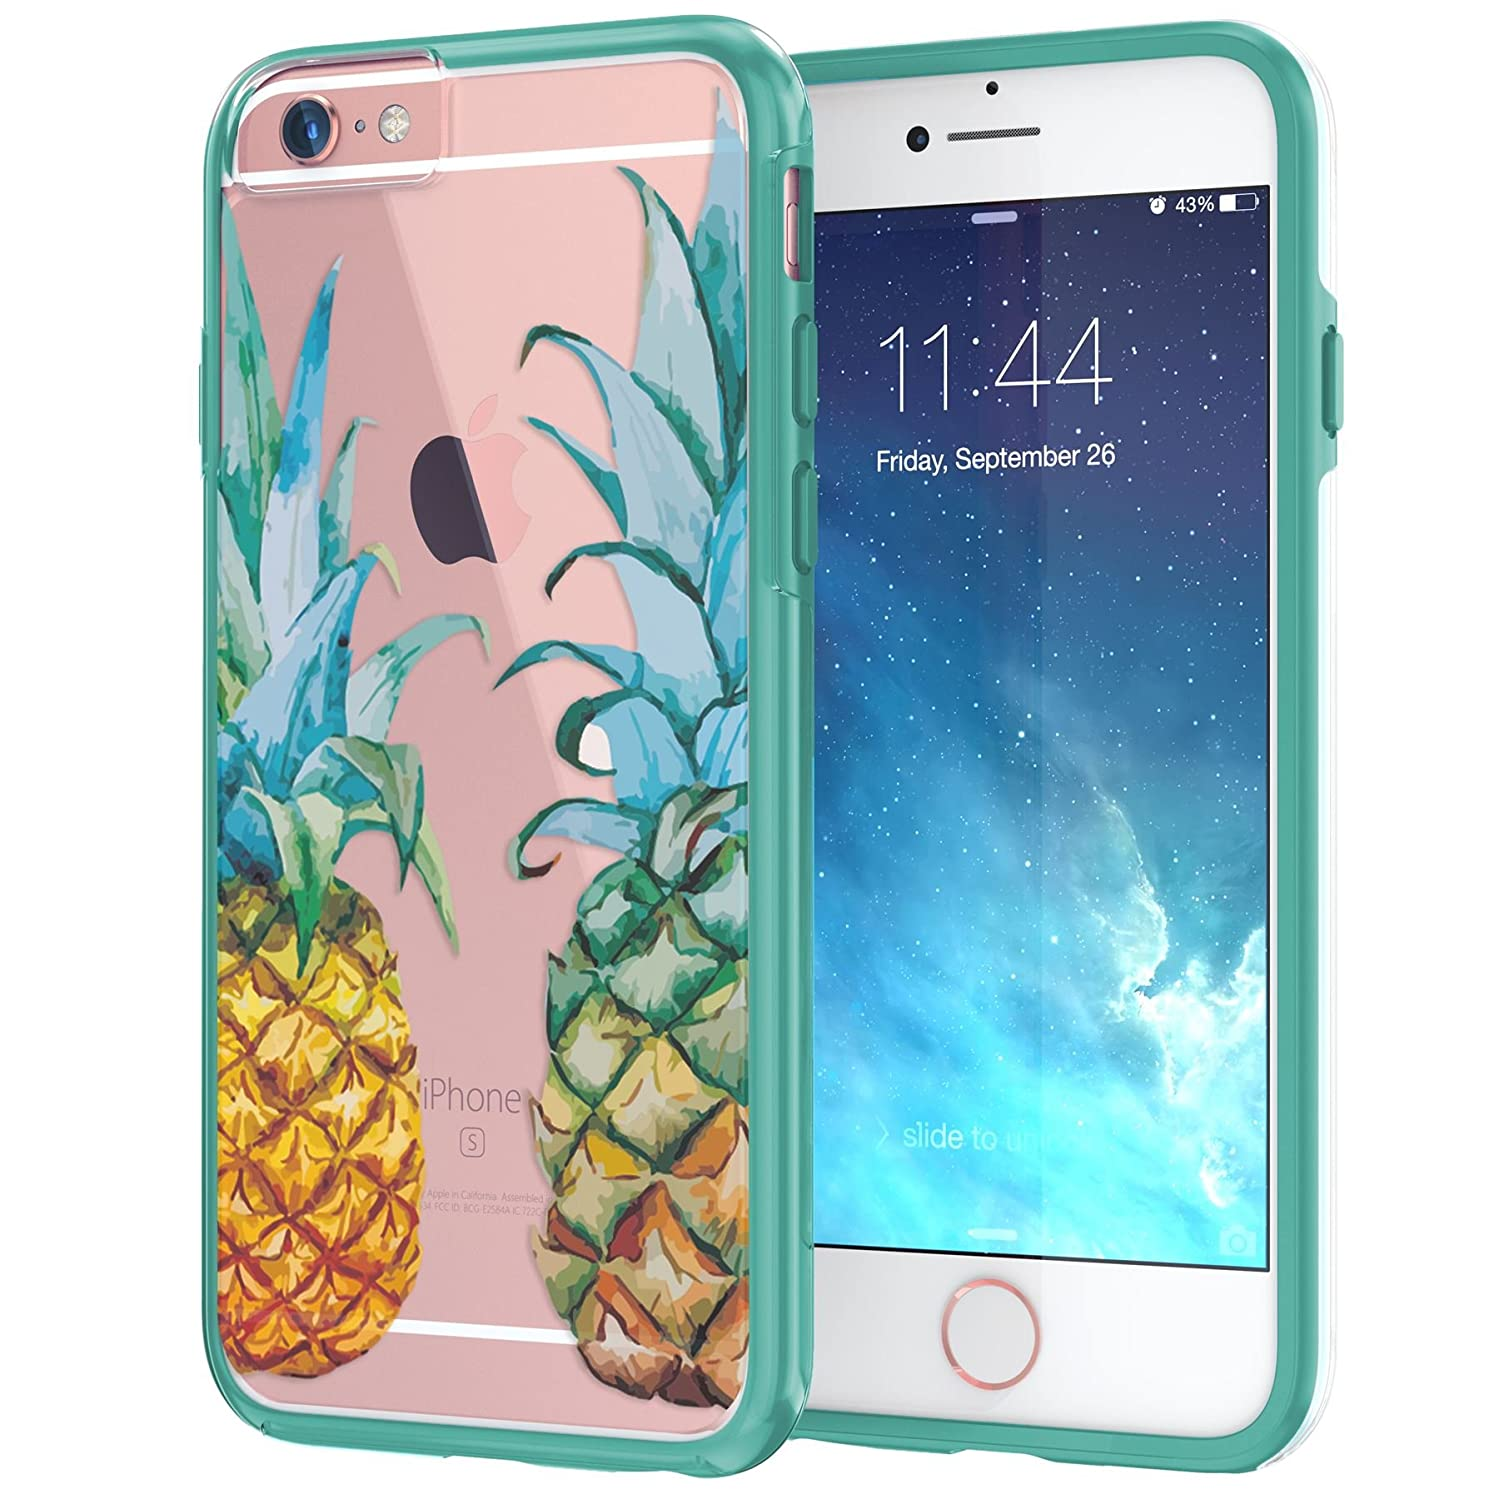 True Color Case Compatible with iPhone 6s Plus Case, Tropical Watercolor Pineapples Printed on Clear Transparent Hybrid Cover Hard +Soft Slim Durable Protective Shockproof TPU Bumper Cover Teal ajfjajzokfvjvq